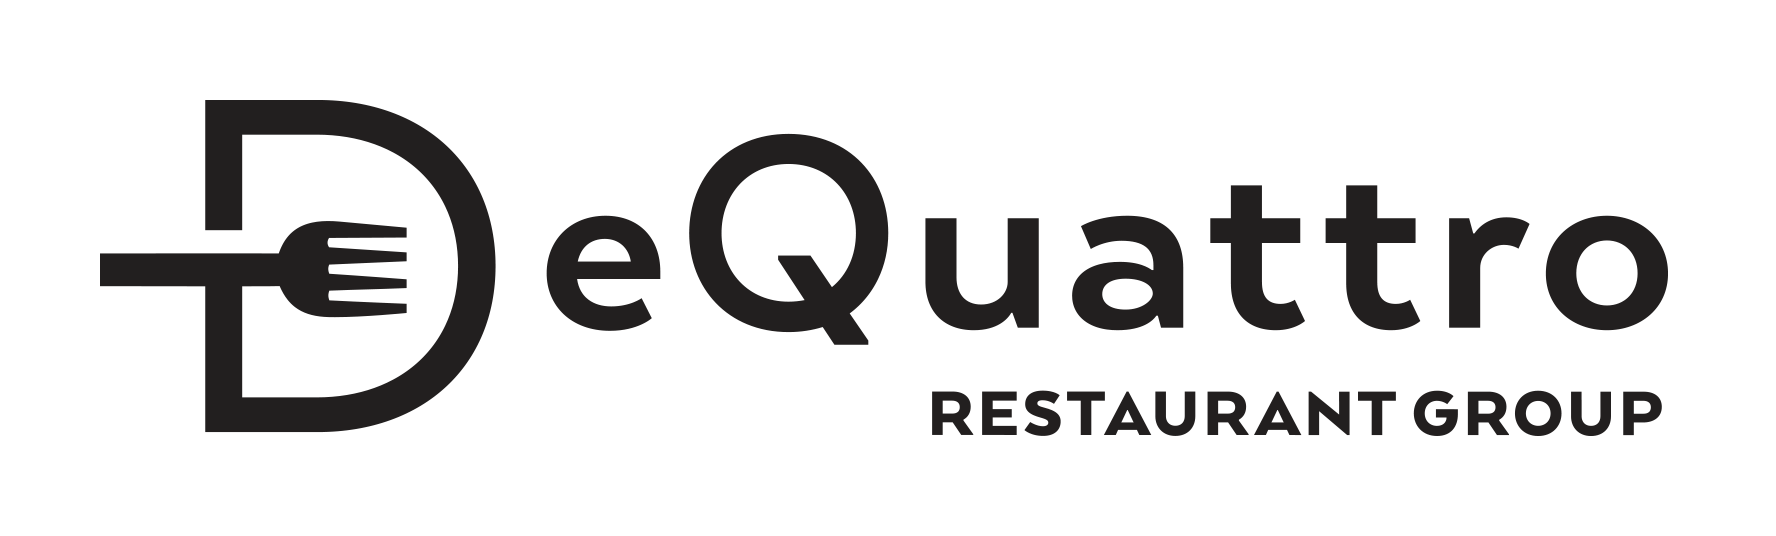 RI restaurant group branding and logo design